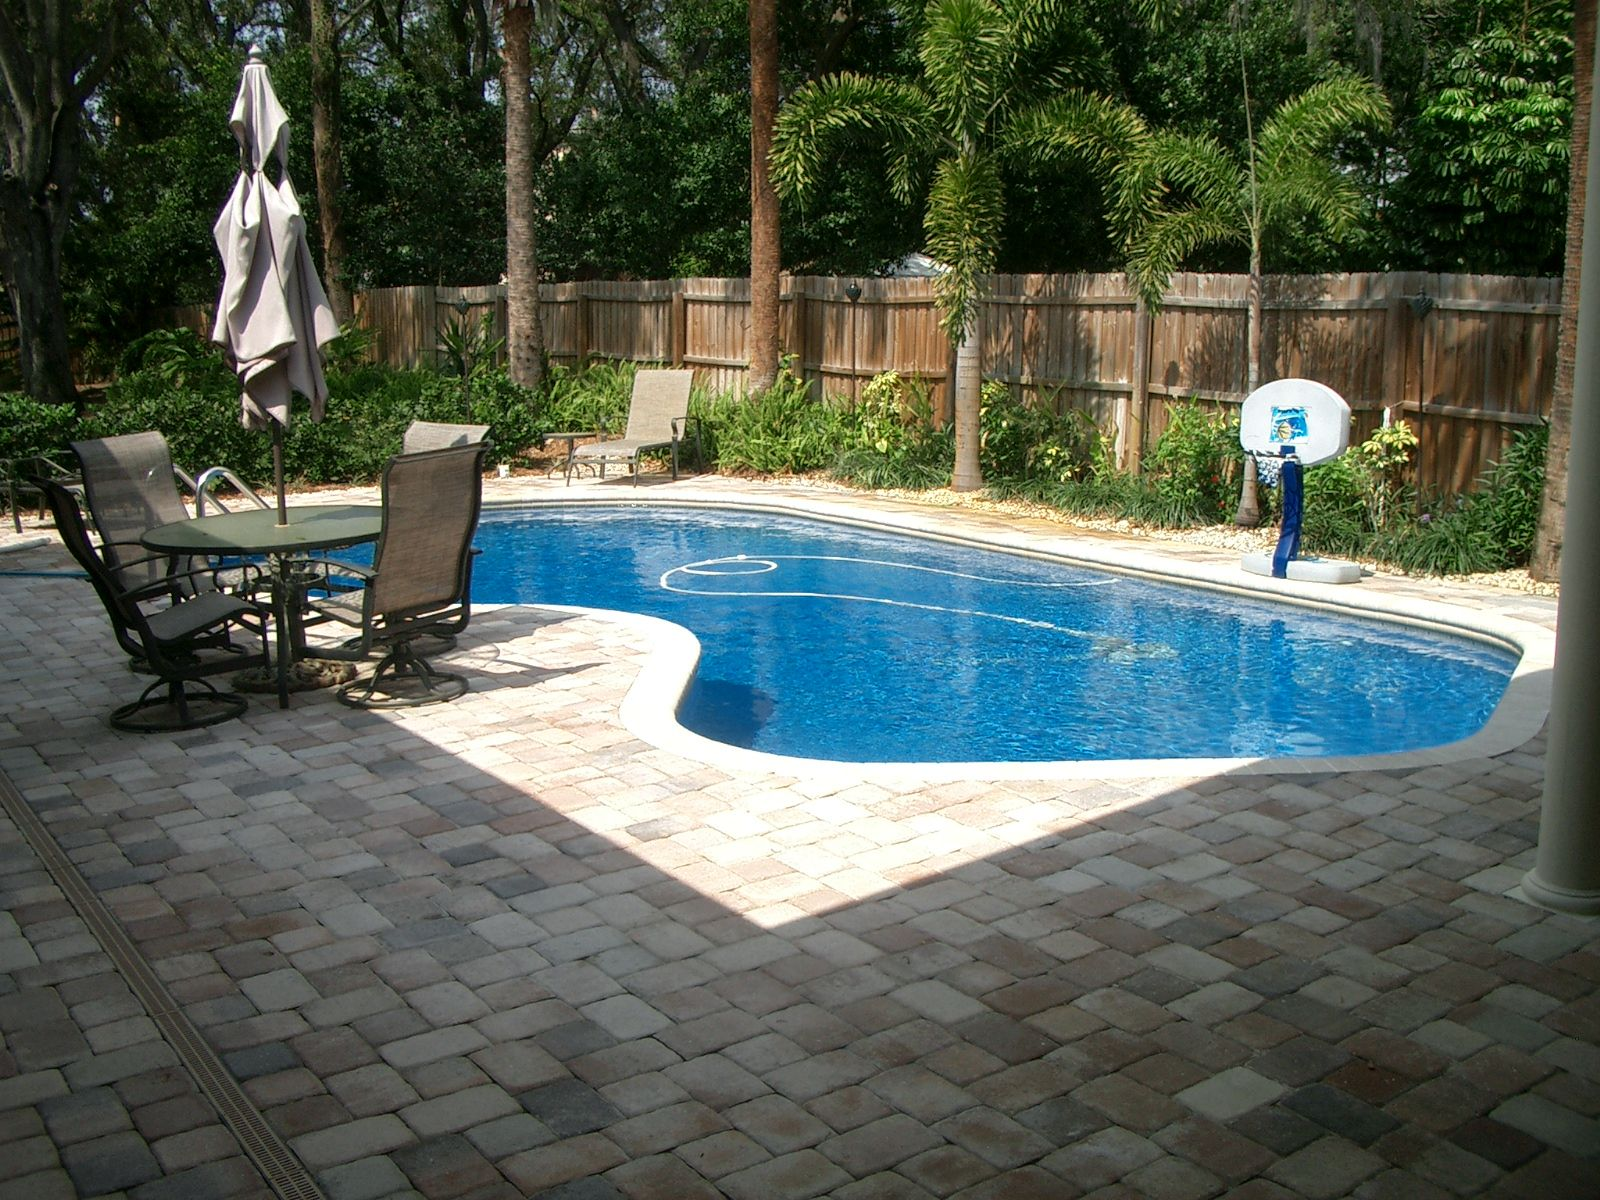 Backyard Pool Designs Landscaping Pools Landscaping Backyard Ideas Backyard Pool Landscaping Pool Landscape Design Pool Landscaping